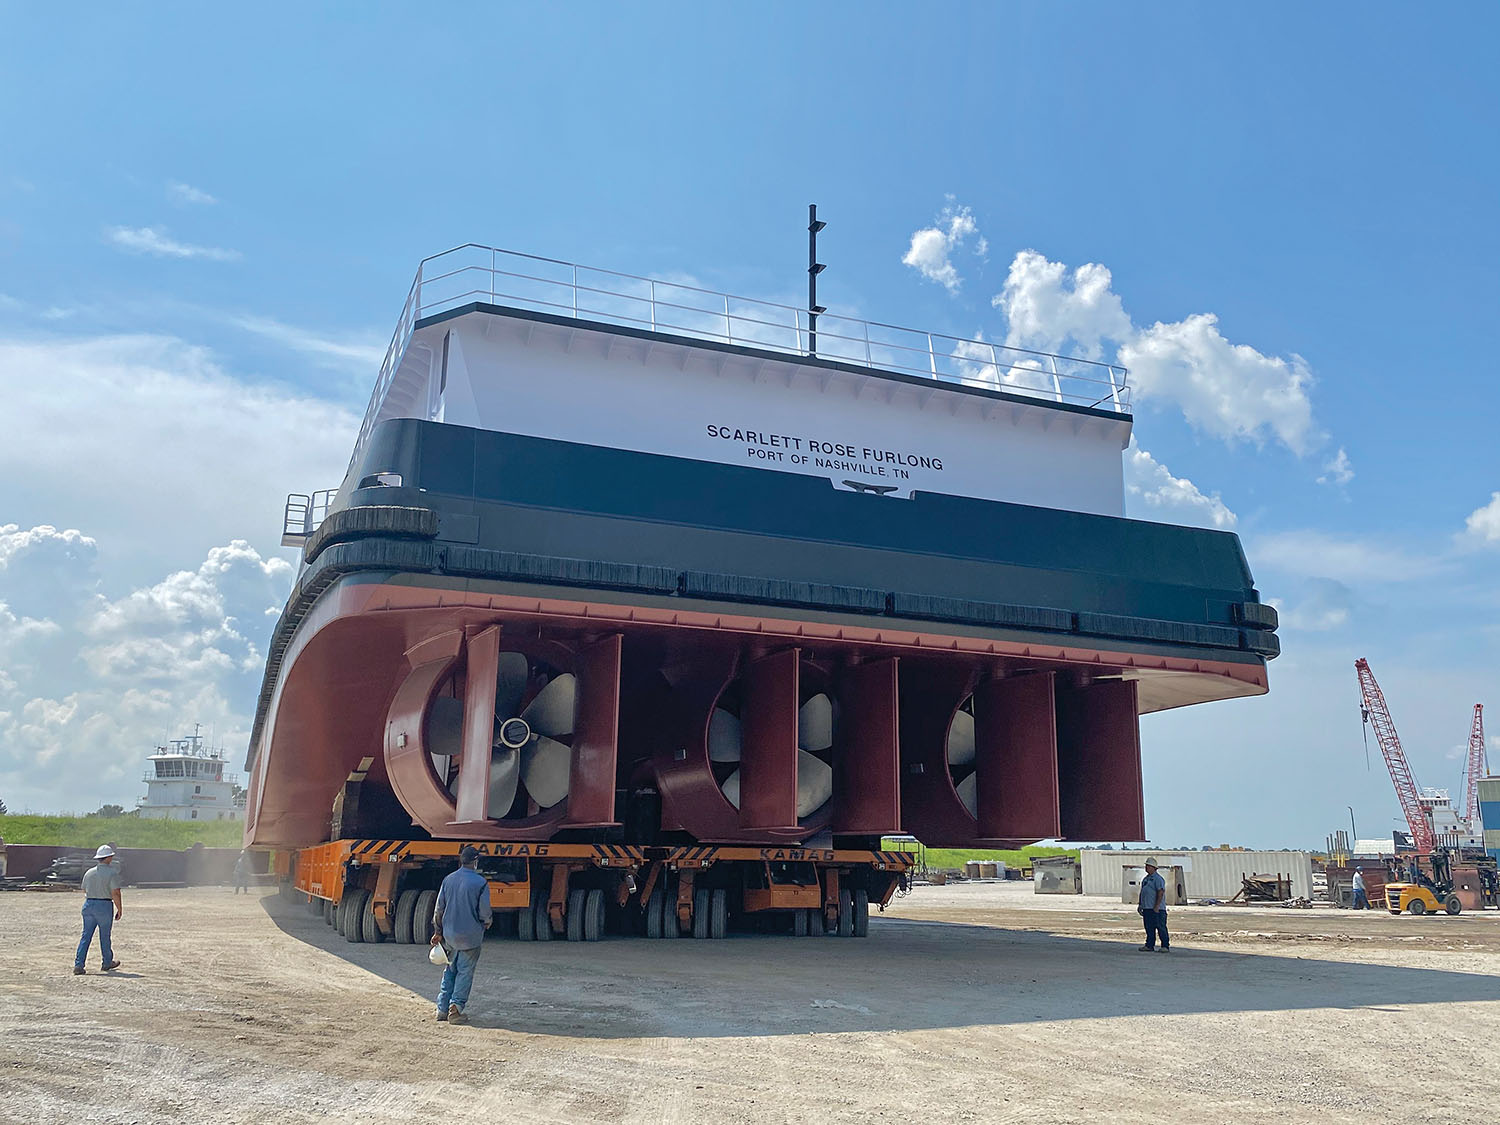 """The Scarlett Rose Furlong features a new """"twin differential"""" steering rudder system designed by CT Marine. (Photo courtesy of Hines Furlong Line)"""